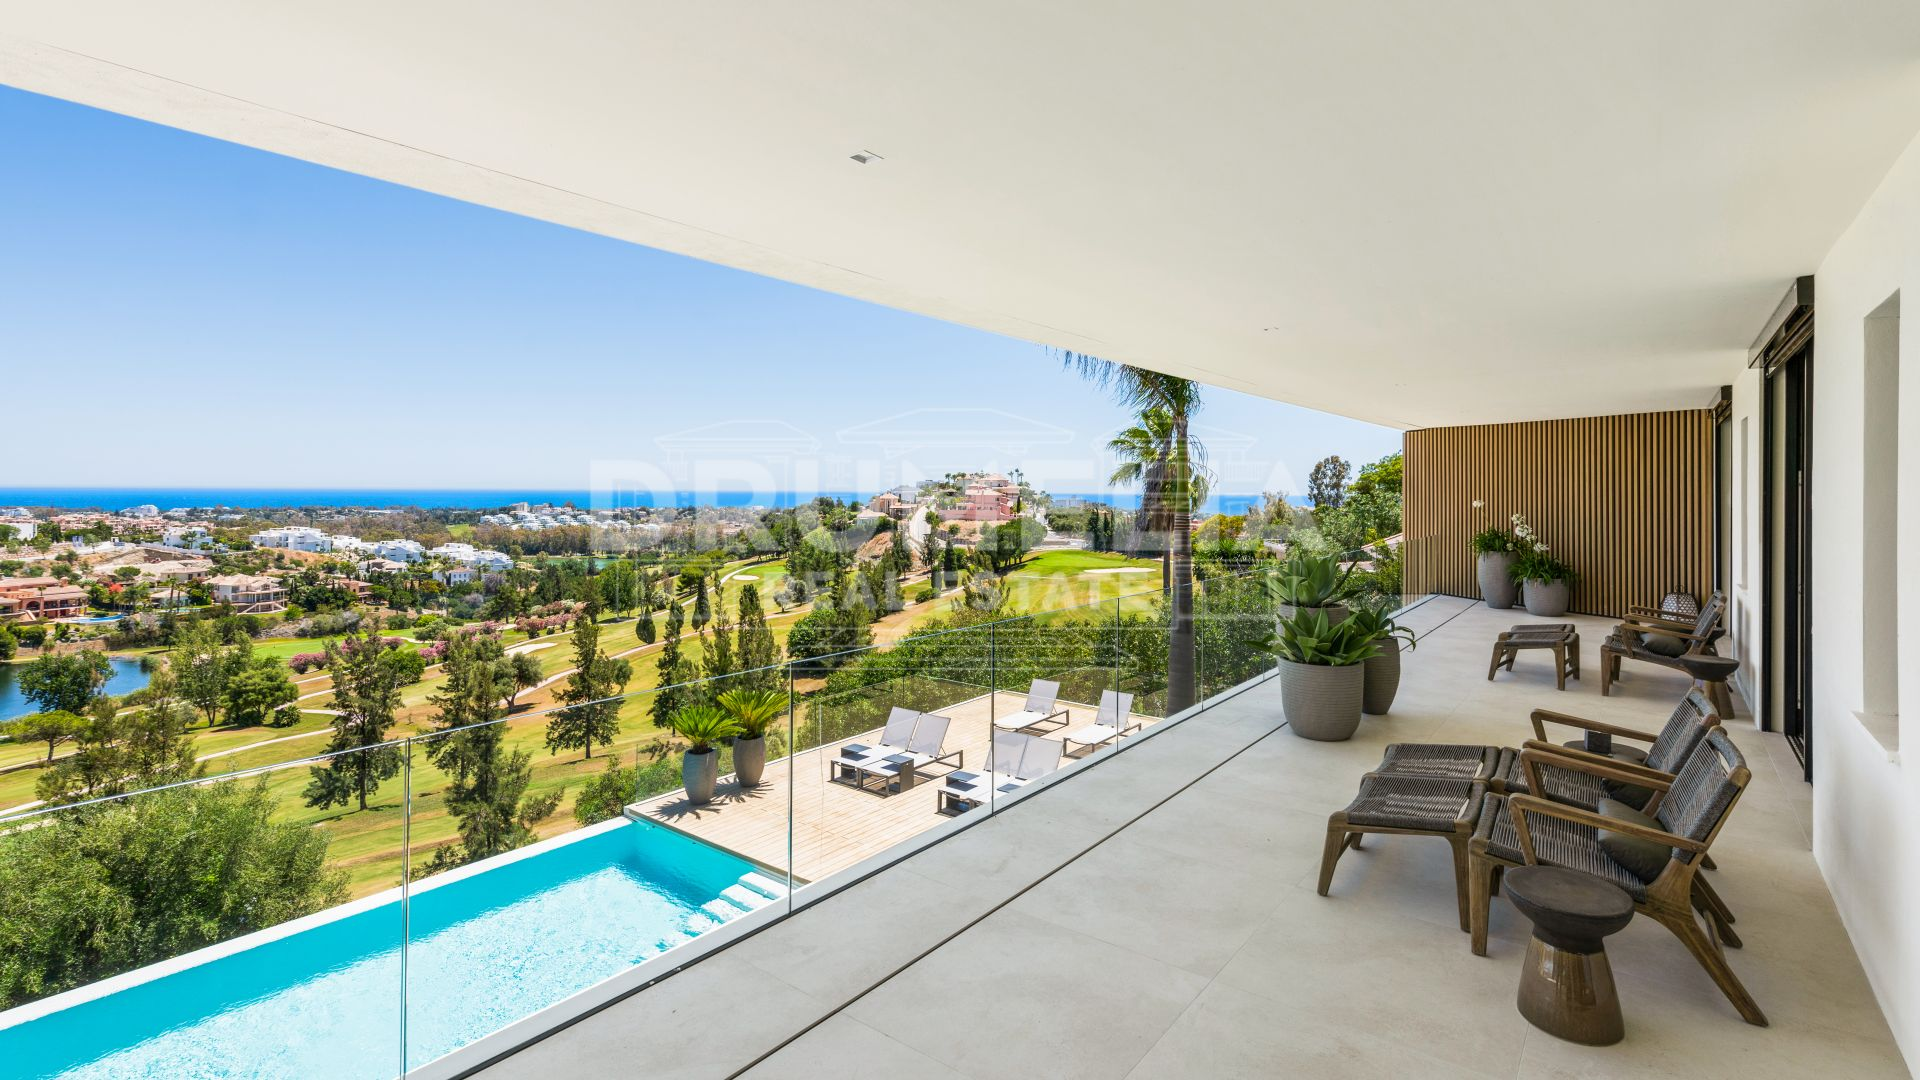 Benahavis, Luminous Contemporary Villa in la Alqueria, Benahavis